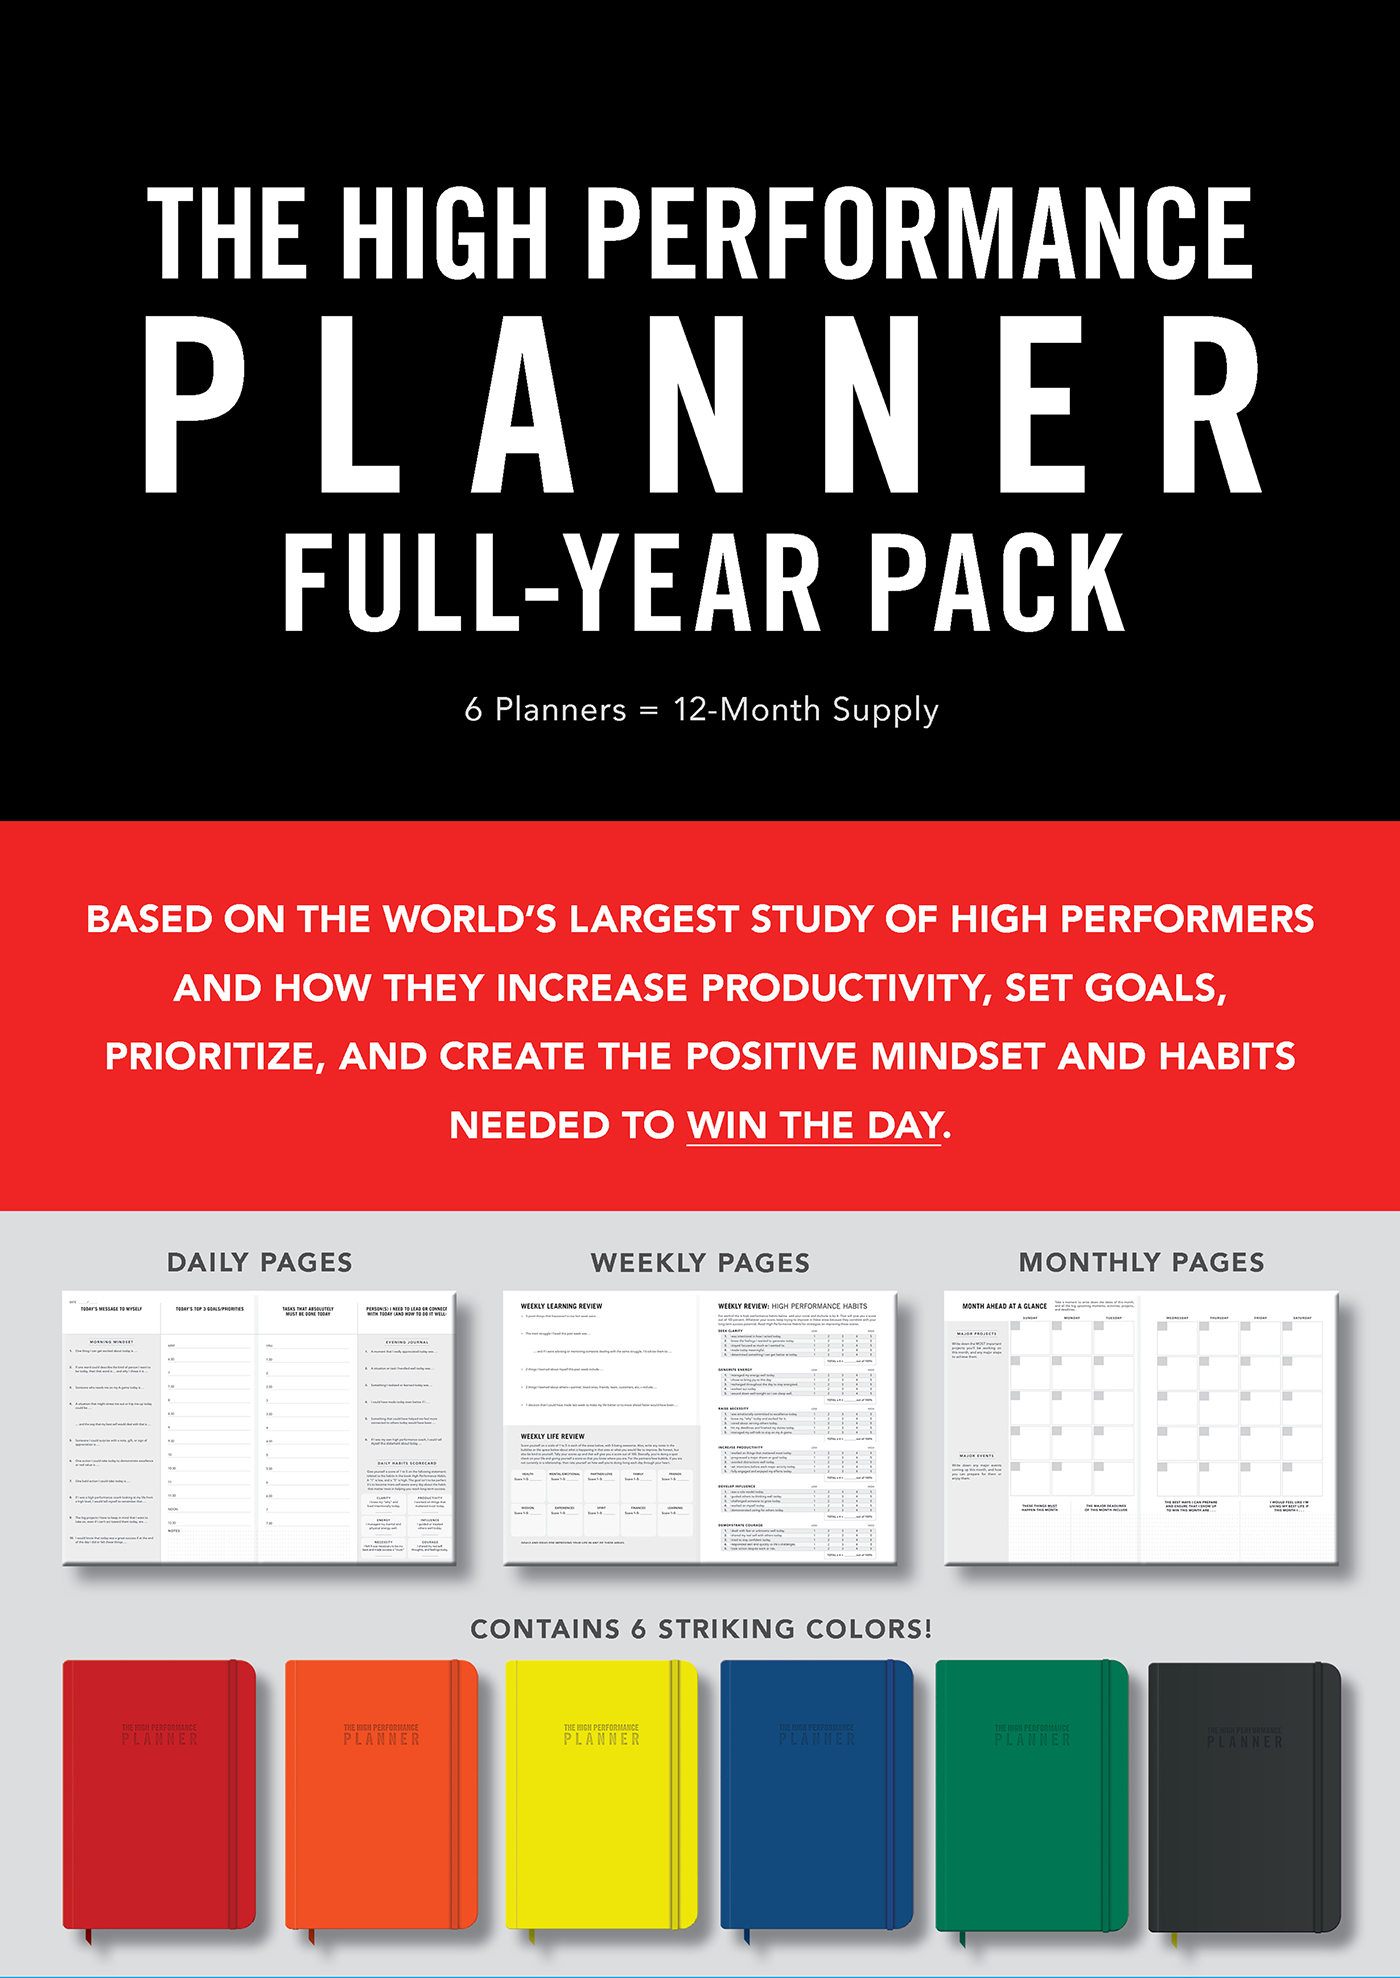 High Performance Planner Full-Year Pack 6 Planners = 12-Month Supply  by Brendon Burchard